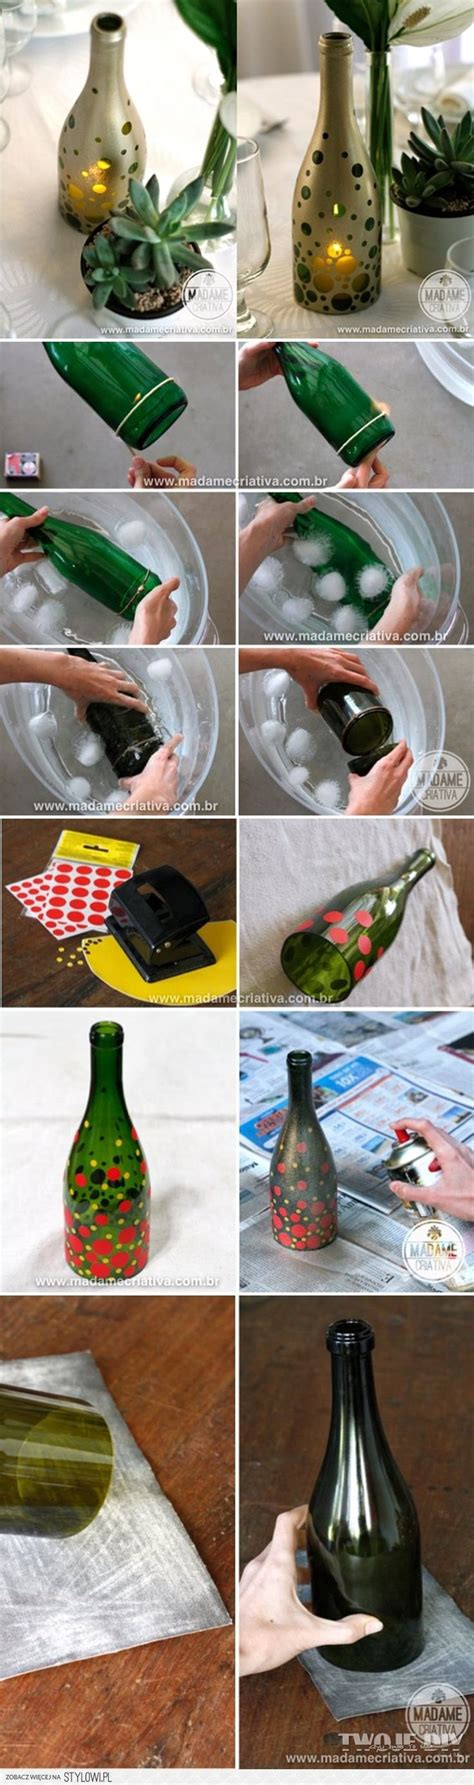 wine bottle diy crafts projects to try on pinterest ikebana flower arrangements and floral arrangements